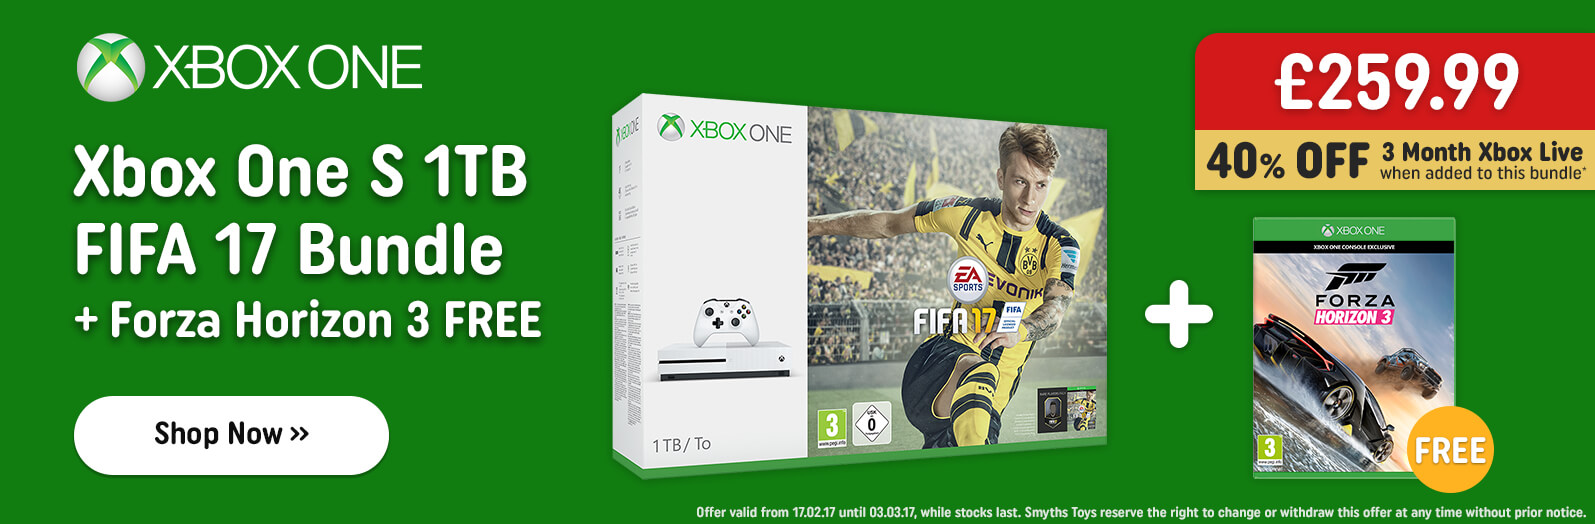 Xbox One FIFA Bundle with Forza